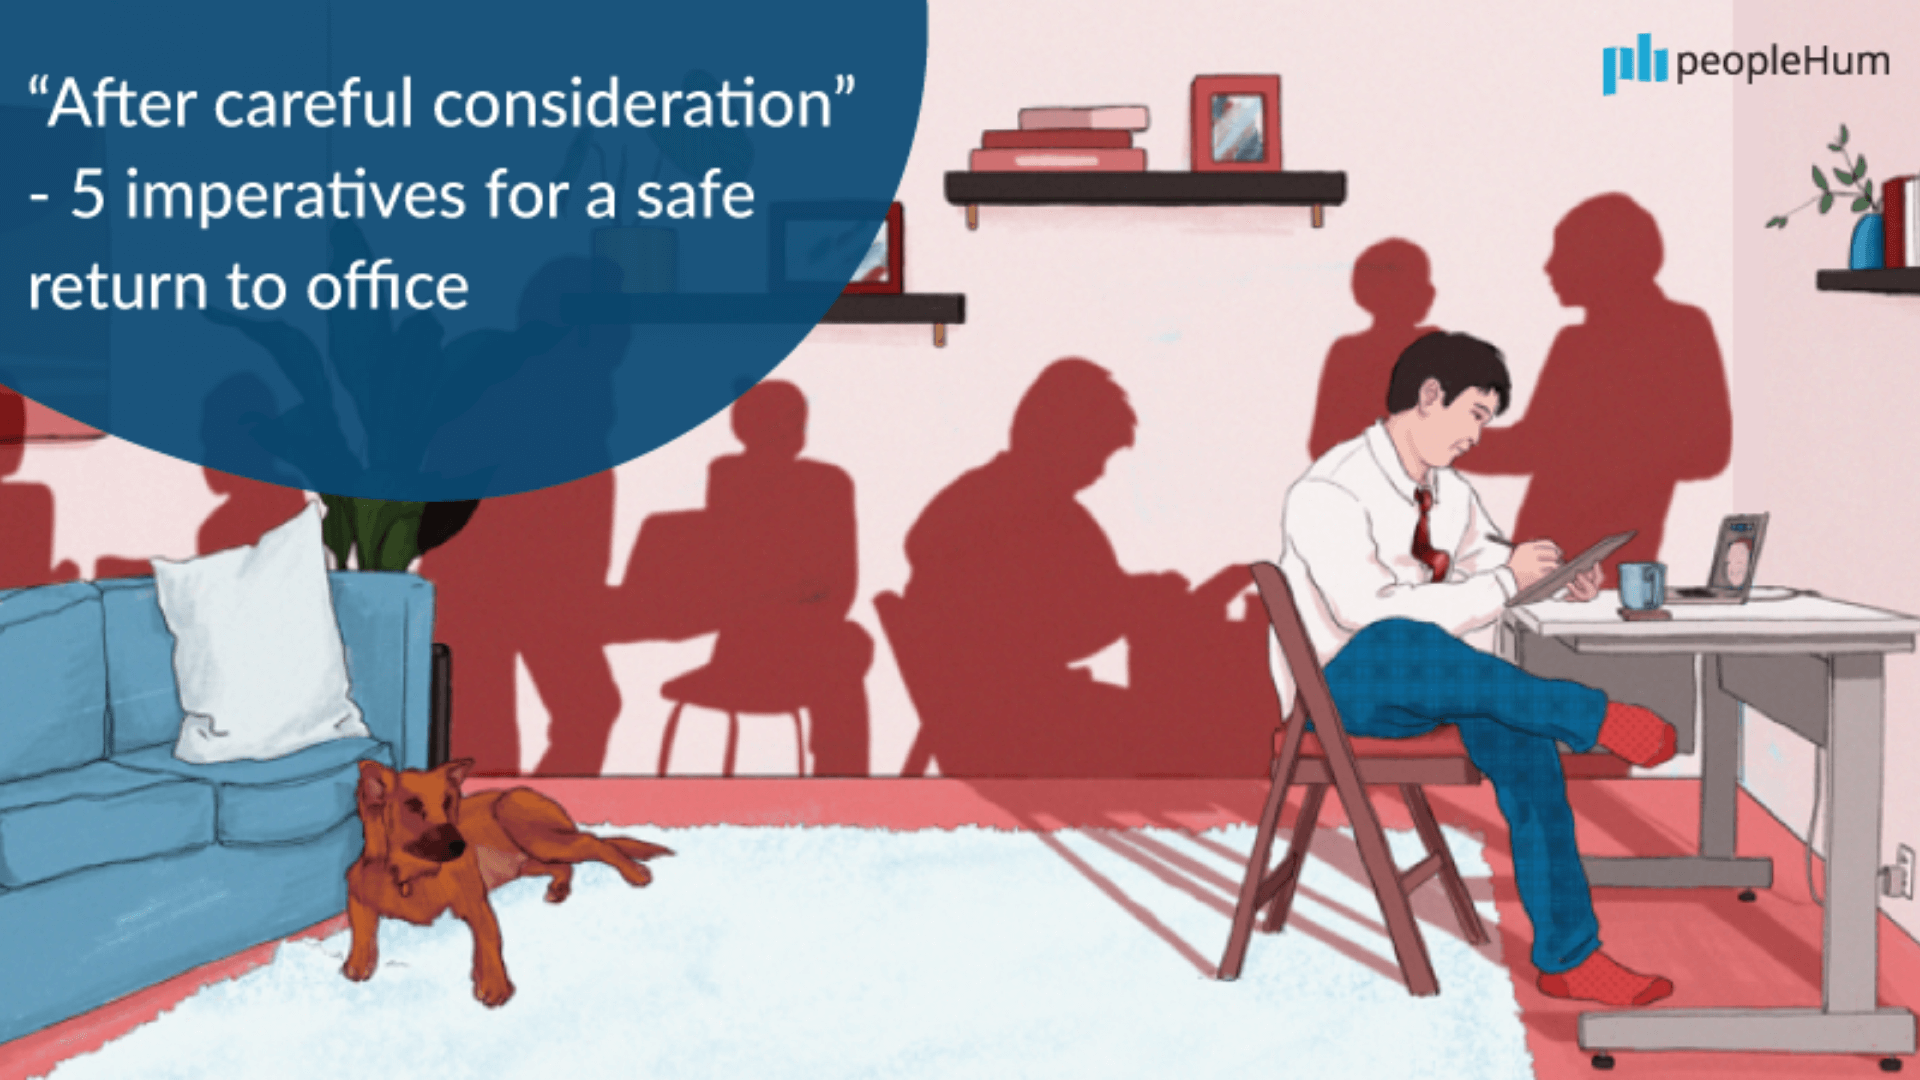 """""""After careful consideration"""" - 5 imperatives for a safe return to office"""